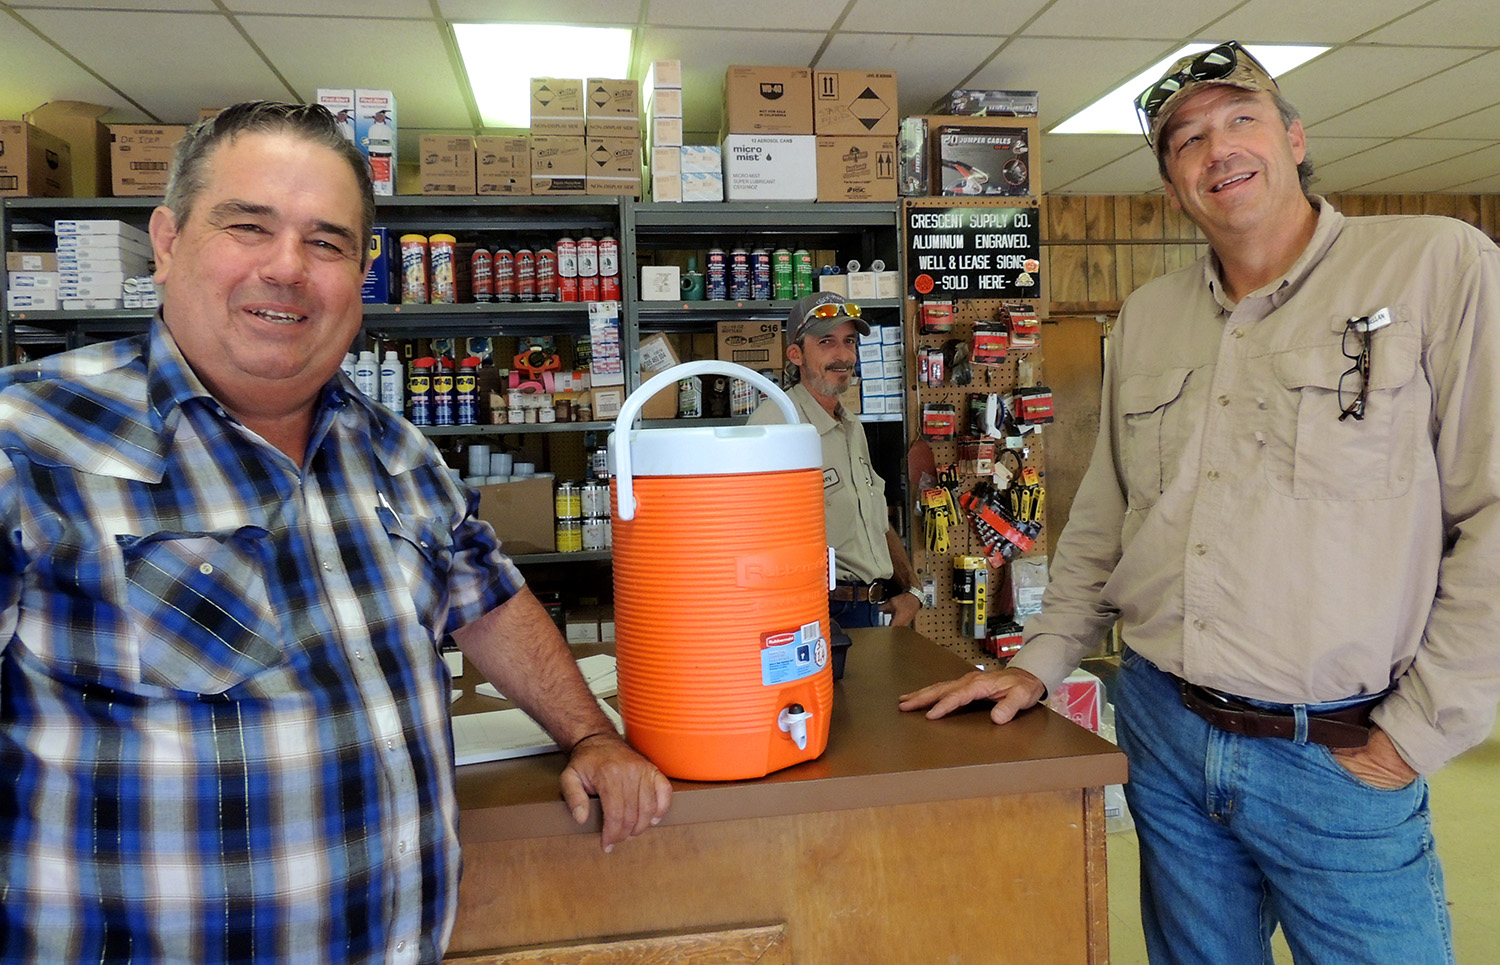 "The proverbial oilfield water can is worth a laugh amid the banter at Crescent Supply Co. in Abilene. ""If you ever drink out of that water can, it's like cocaine,"" said customer Derrell Riggan, right, referring to the addictive nature of working in the oil industry. ""You can't get off of it,"" said Scott Tarpley, Crescent manager. ""You're done."" Behind the counter is Rickey Weaver, assistant manager. Riggan owns DWR Oil Co. in Merkel. PHOTO BY HANABA MUNN WELCH"